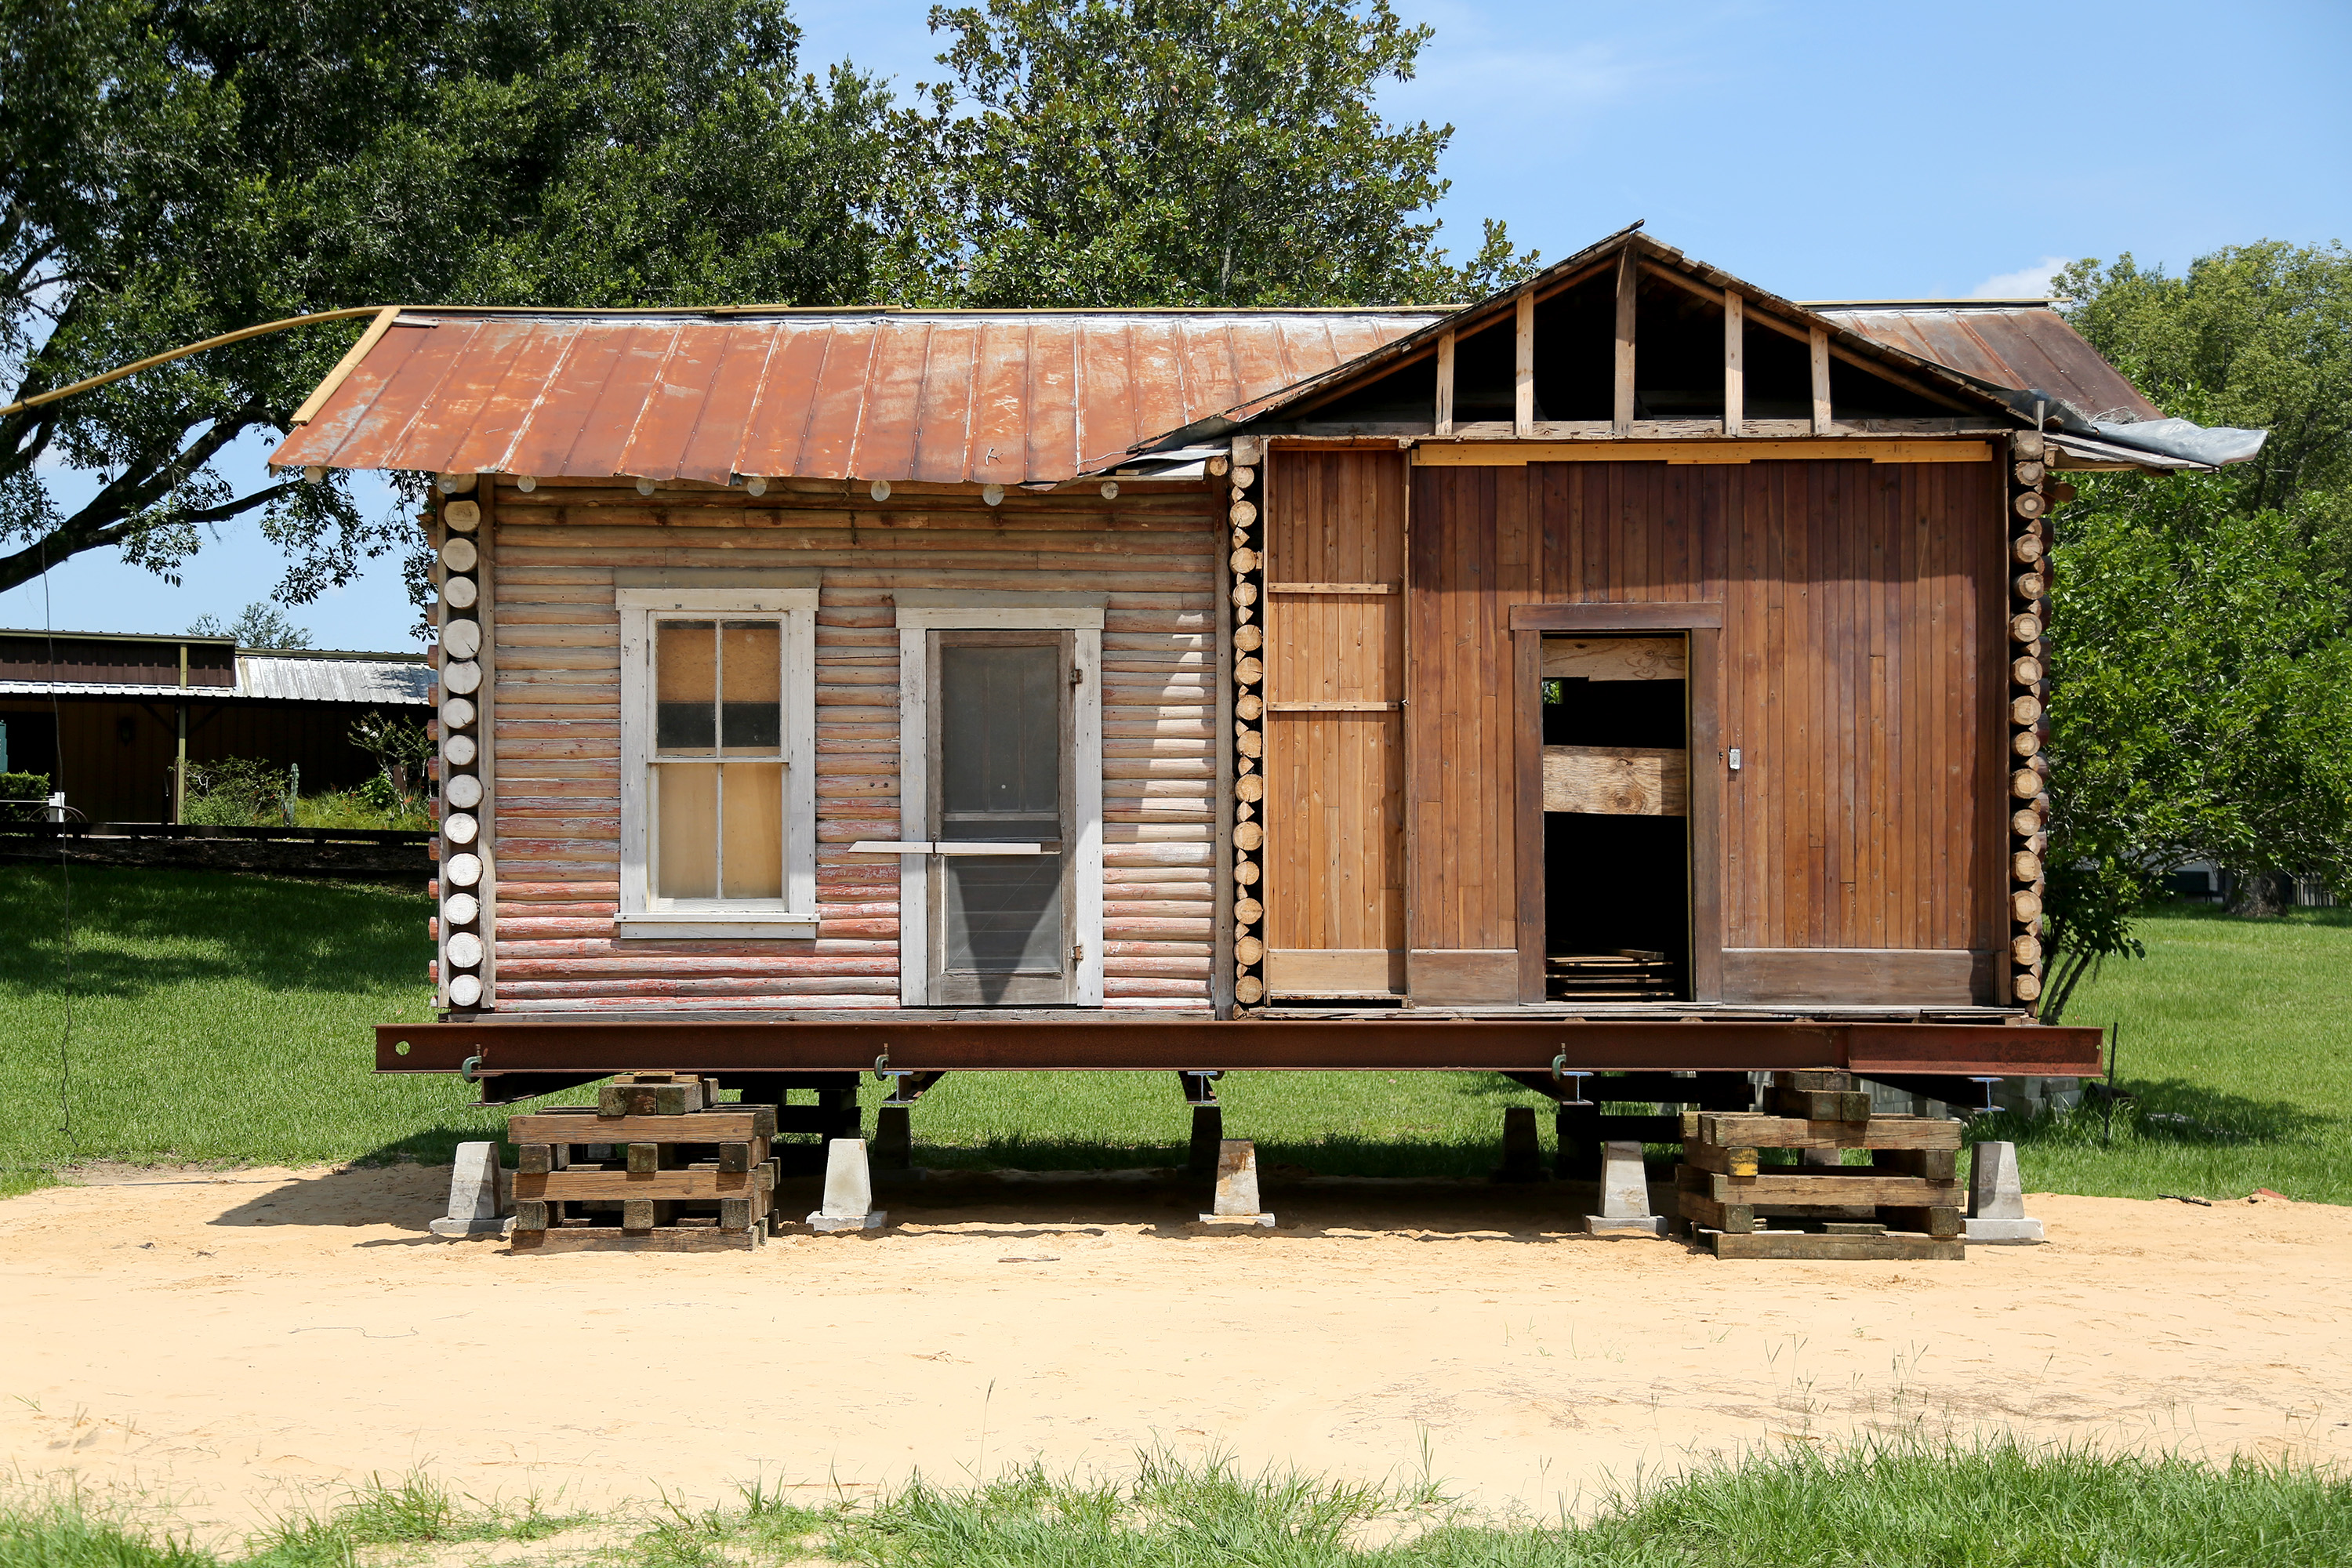 Century Old Log Cabin Built To Last Is Next Exhibit At Pioneer Florida Museum